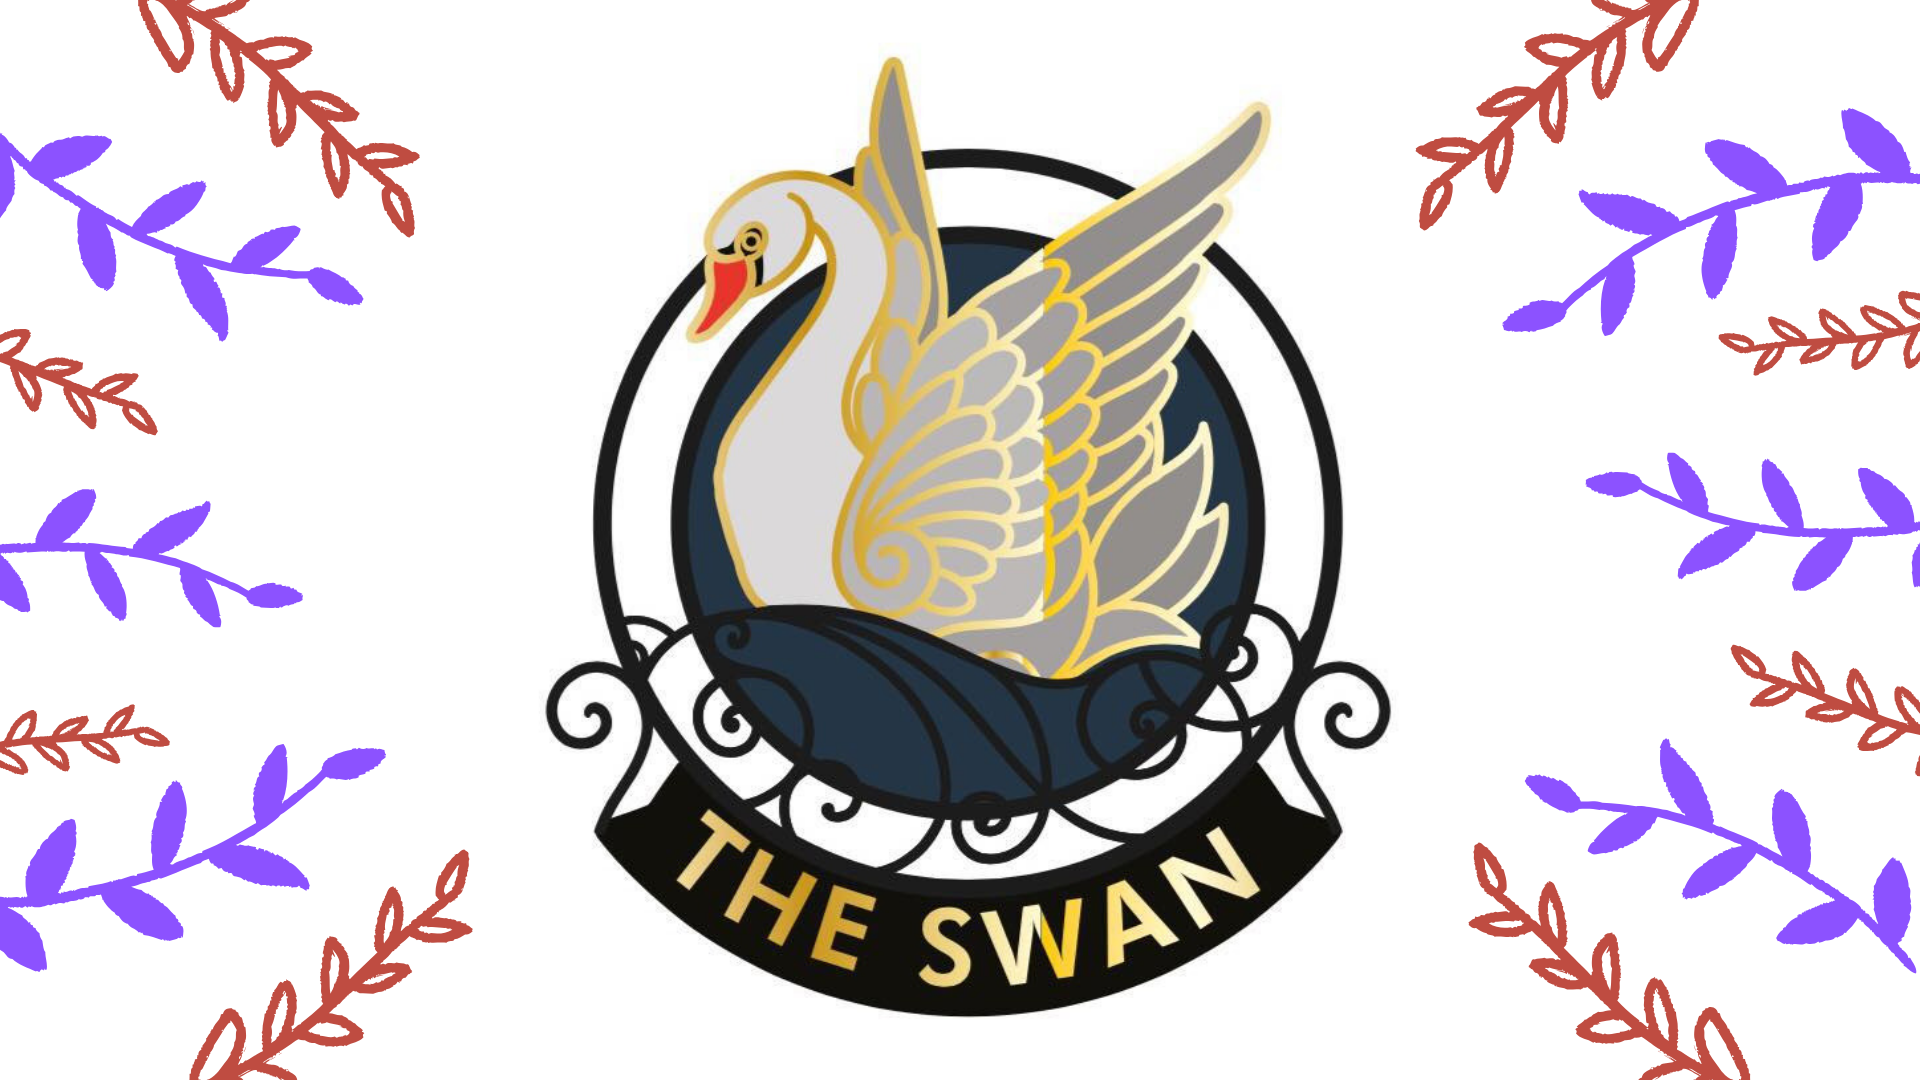 The swan comedy